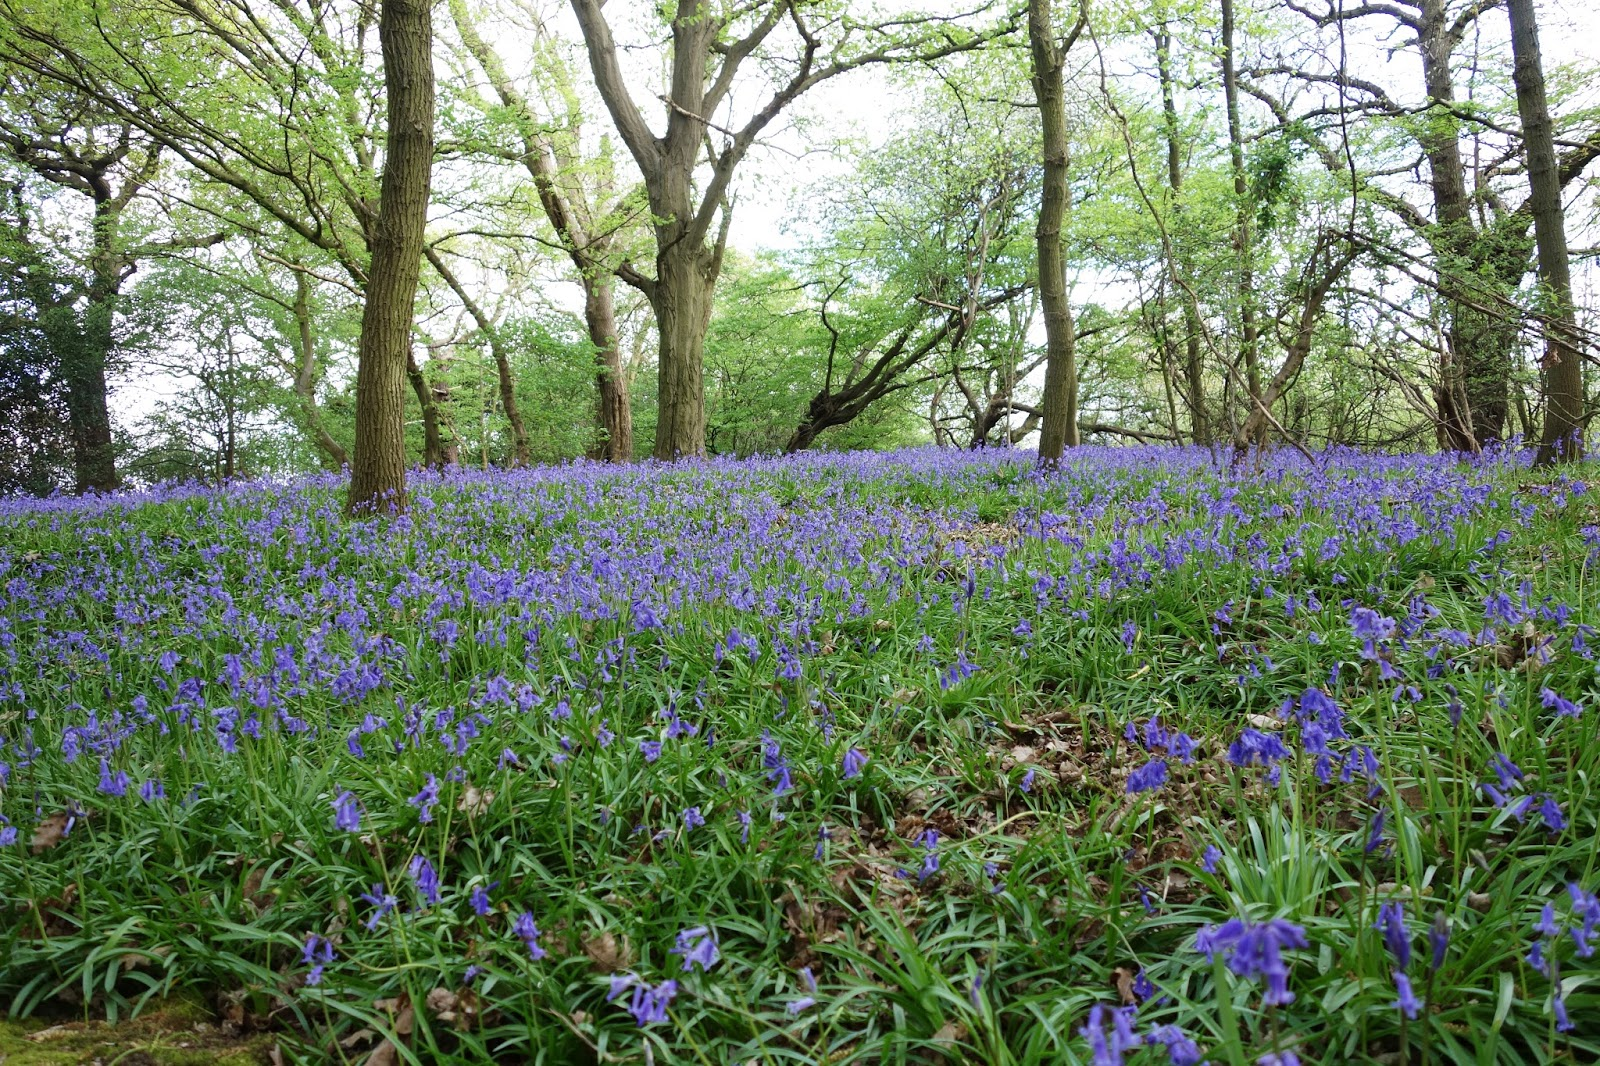 A spring walk in a bluebell wood, spring 2017